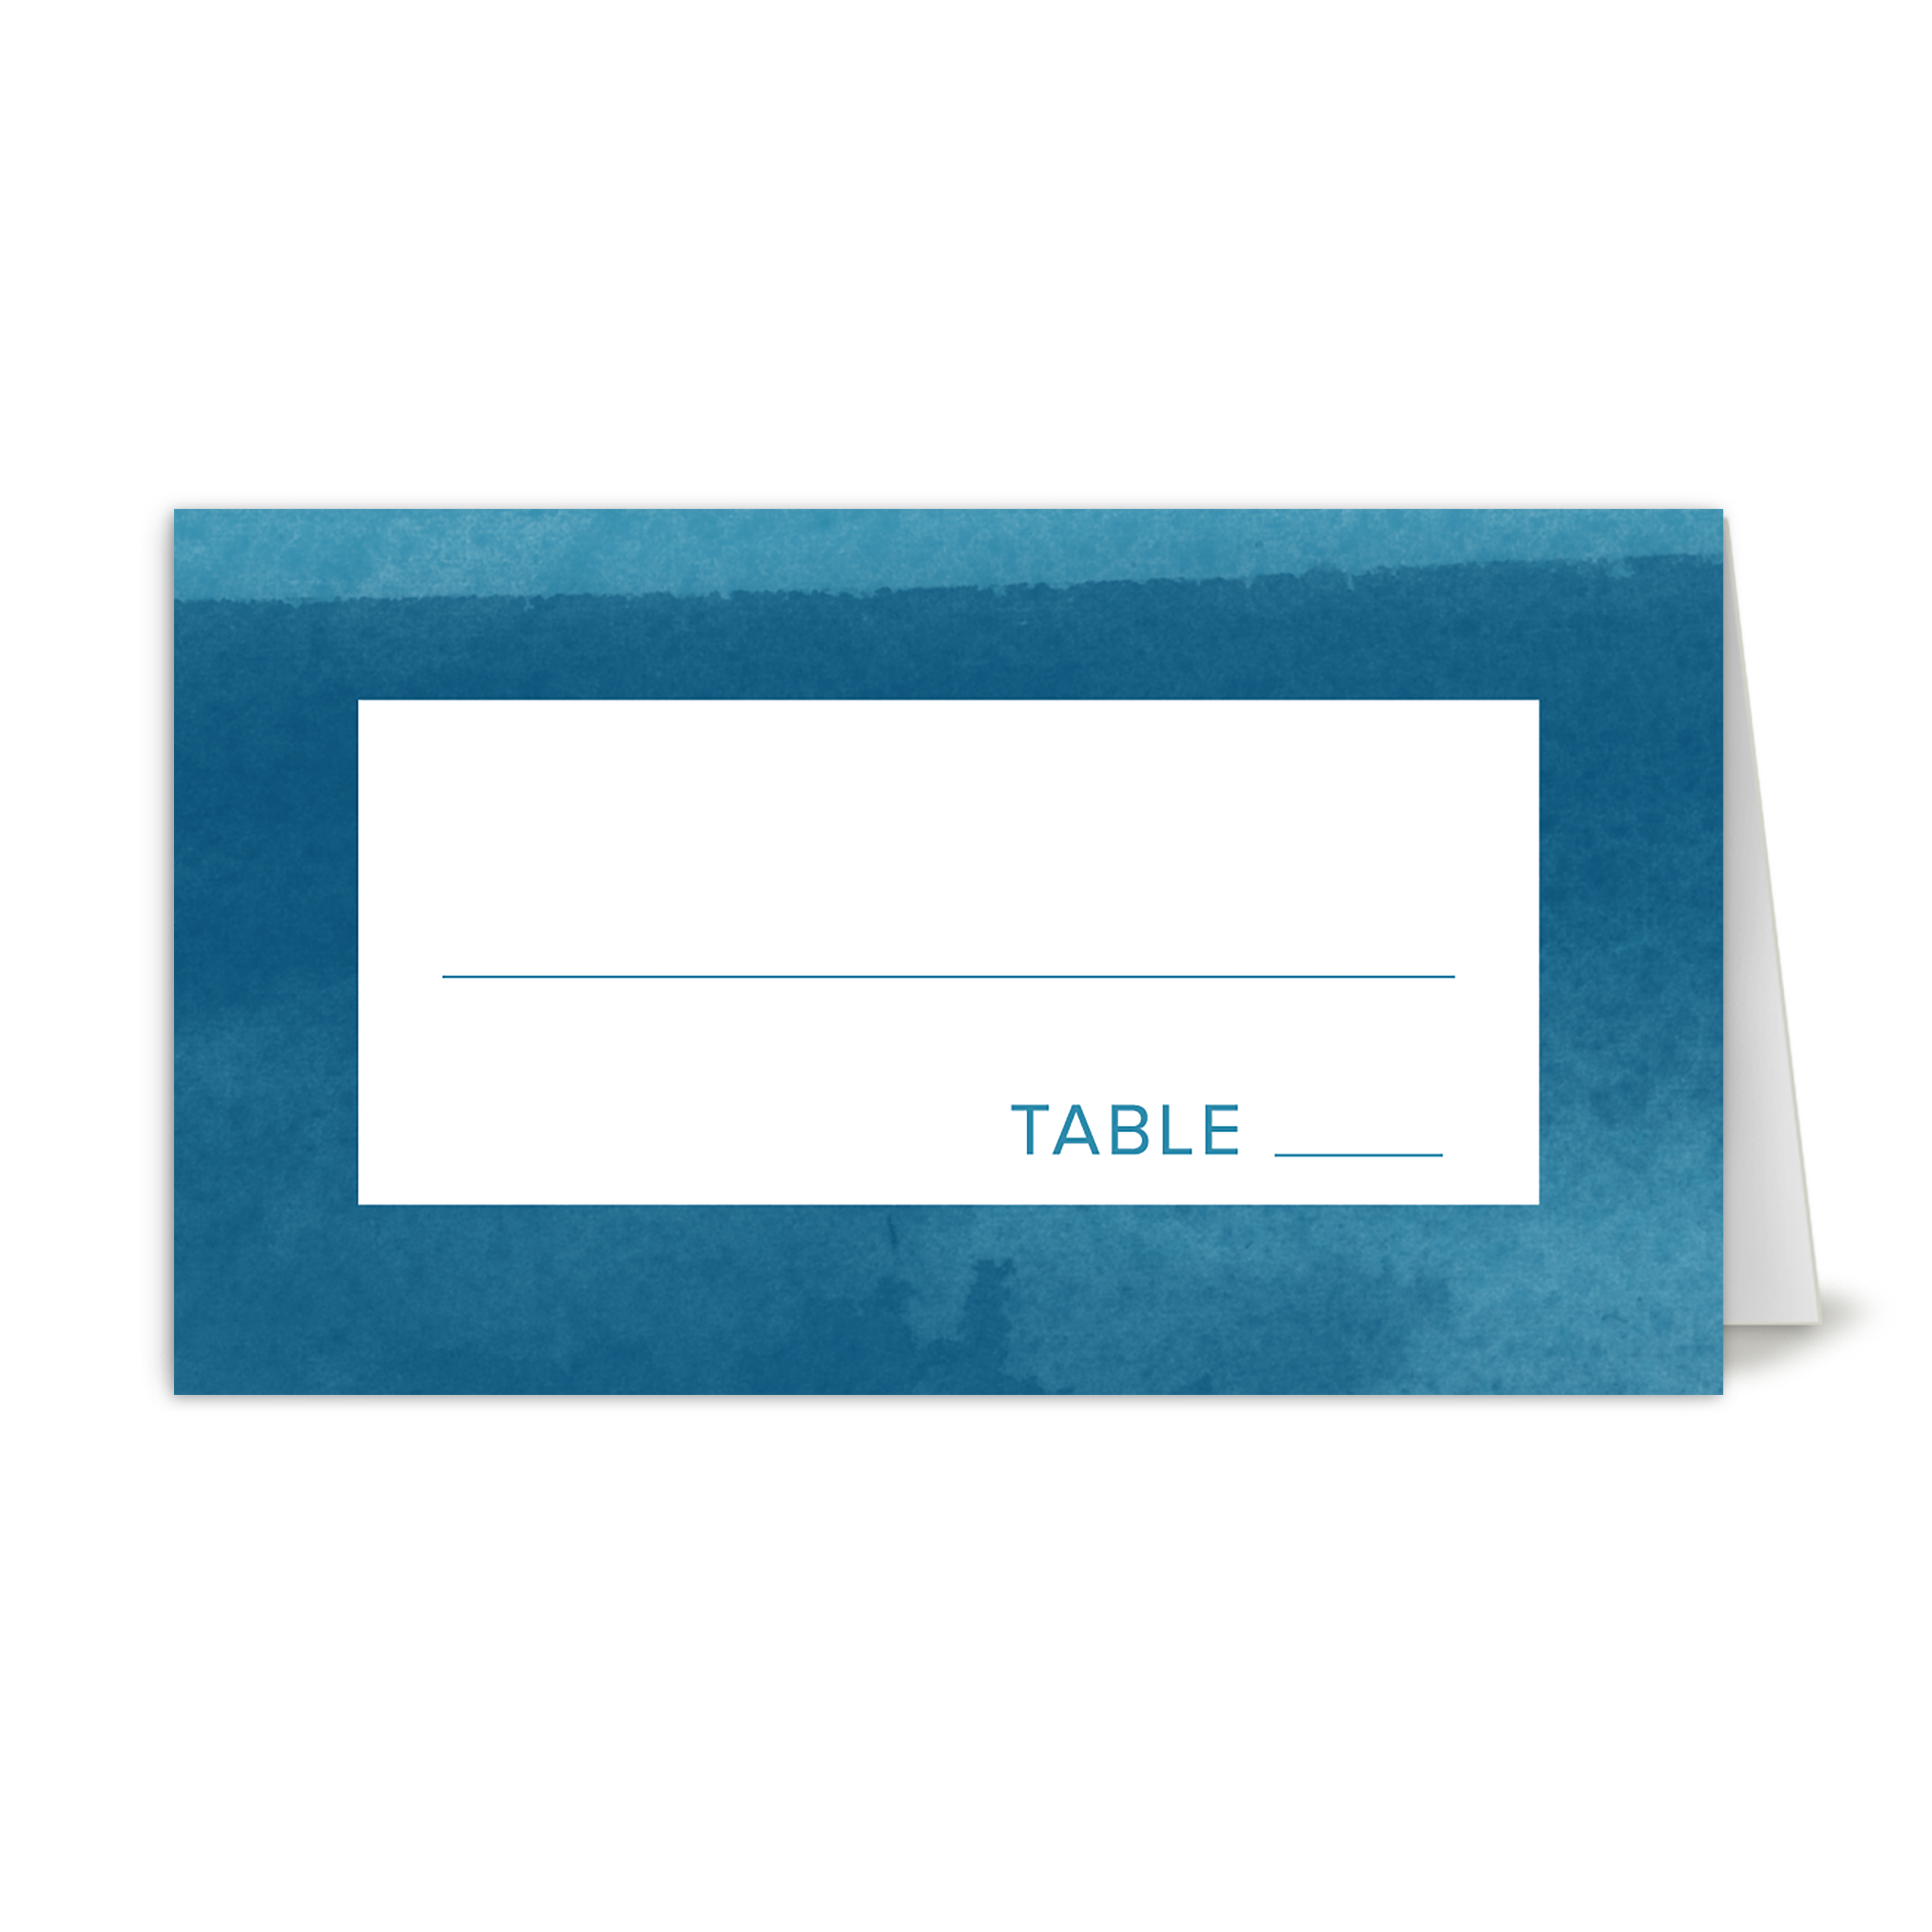 Personalized Wedding Place Card - We Do - 3.5 x 2 Folded